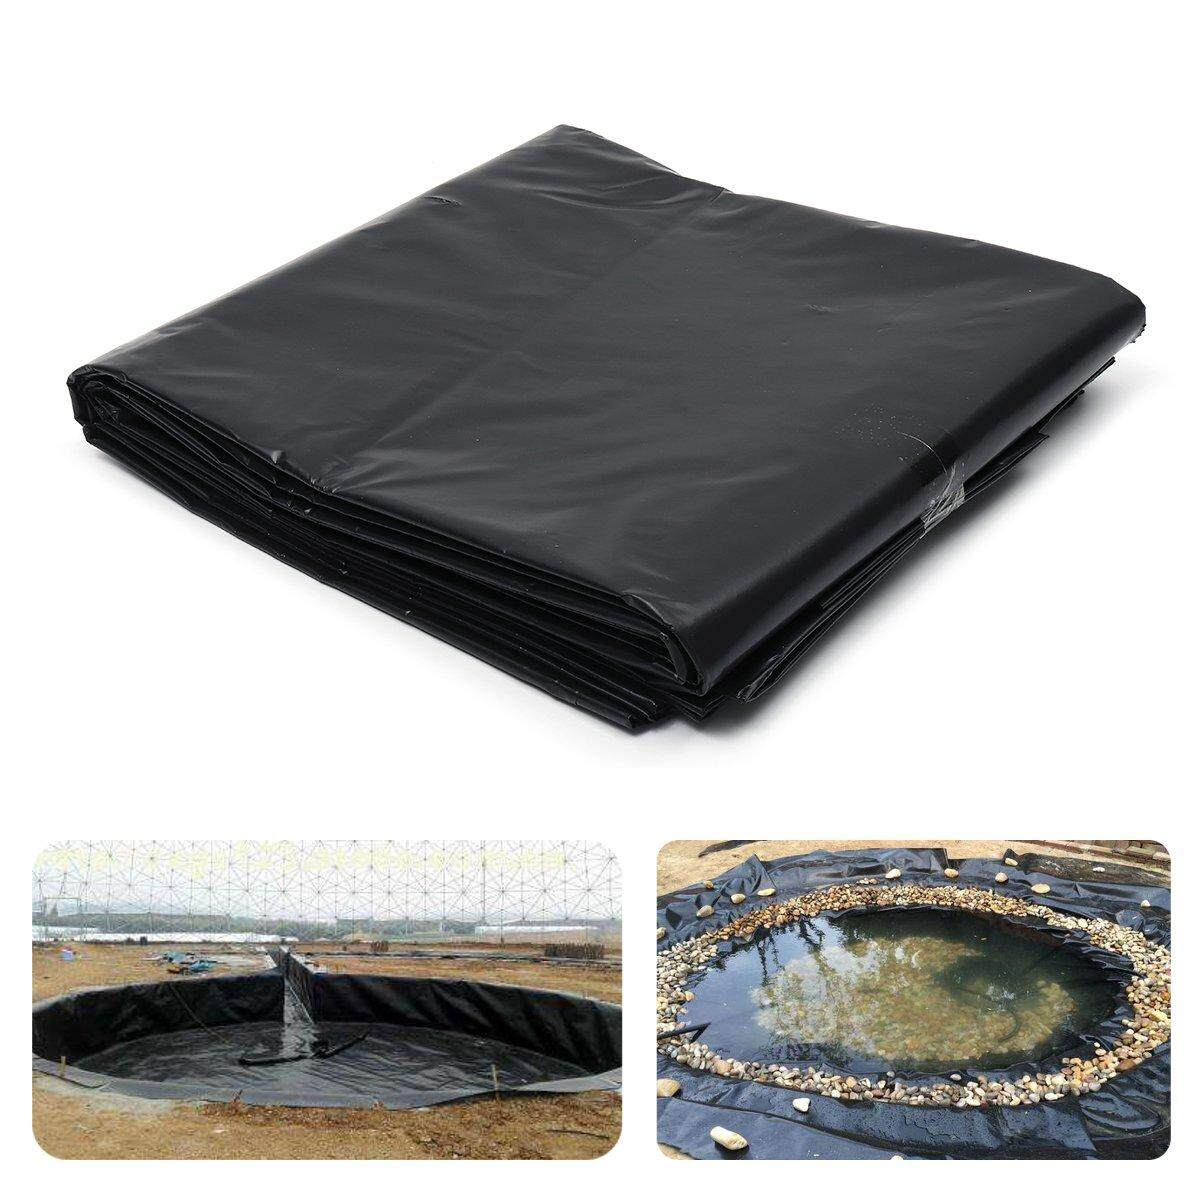 HDPE Fish Pool Pond Liner Membrane Reinforced Gardens Pools Landscaping Black 1.5mx1.5m